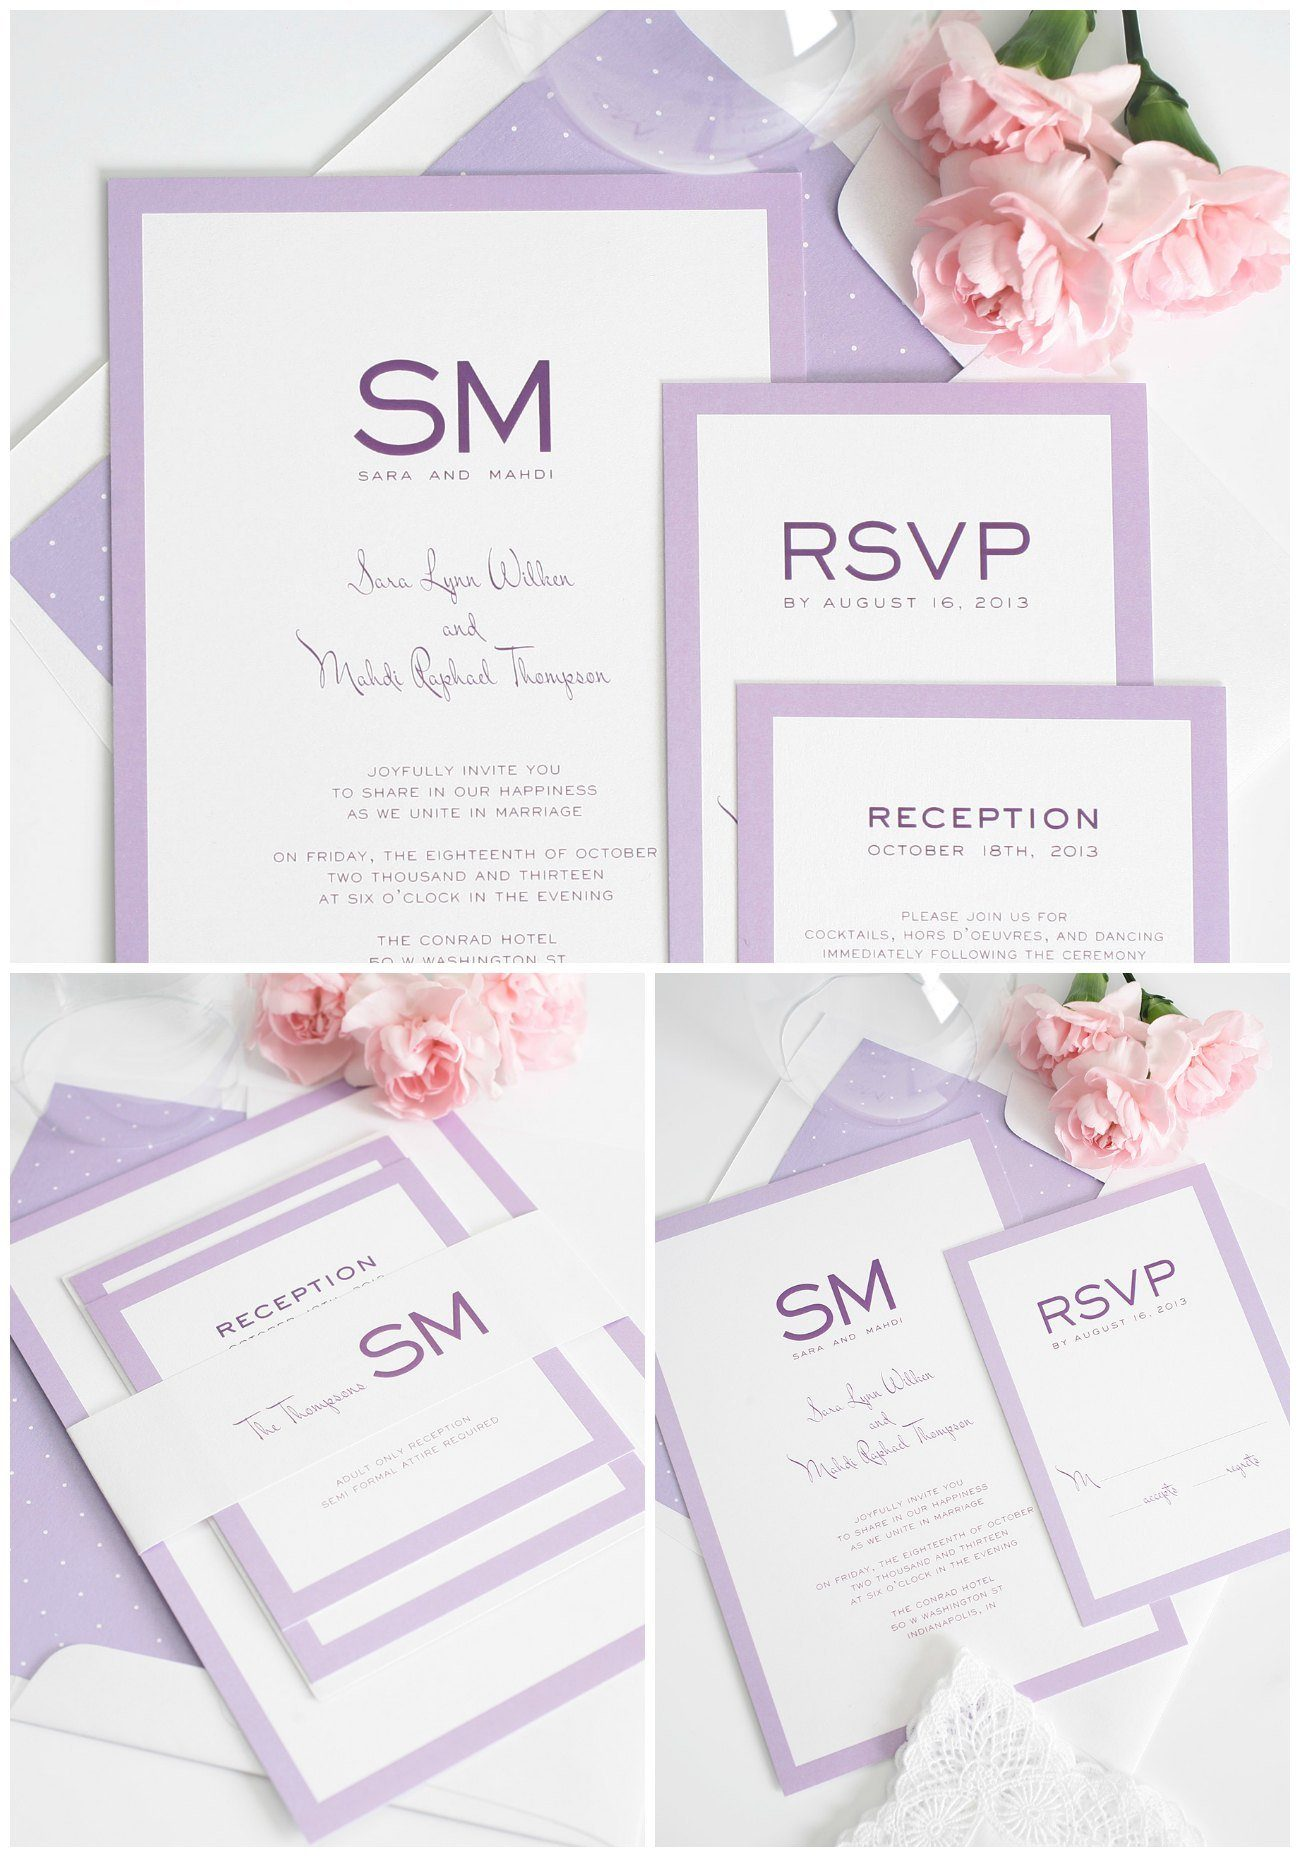 Light Purple wedding invitations with borders and monogram